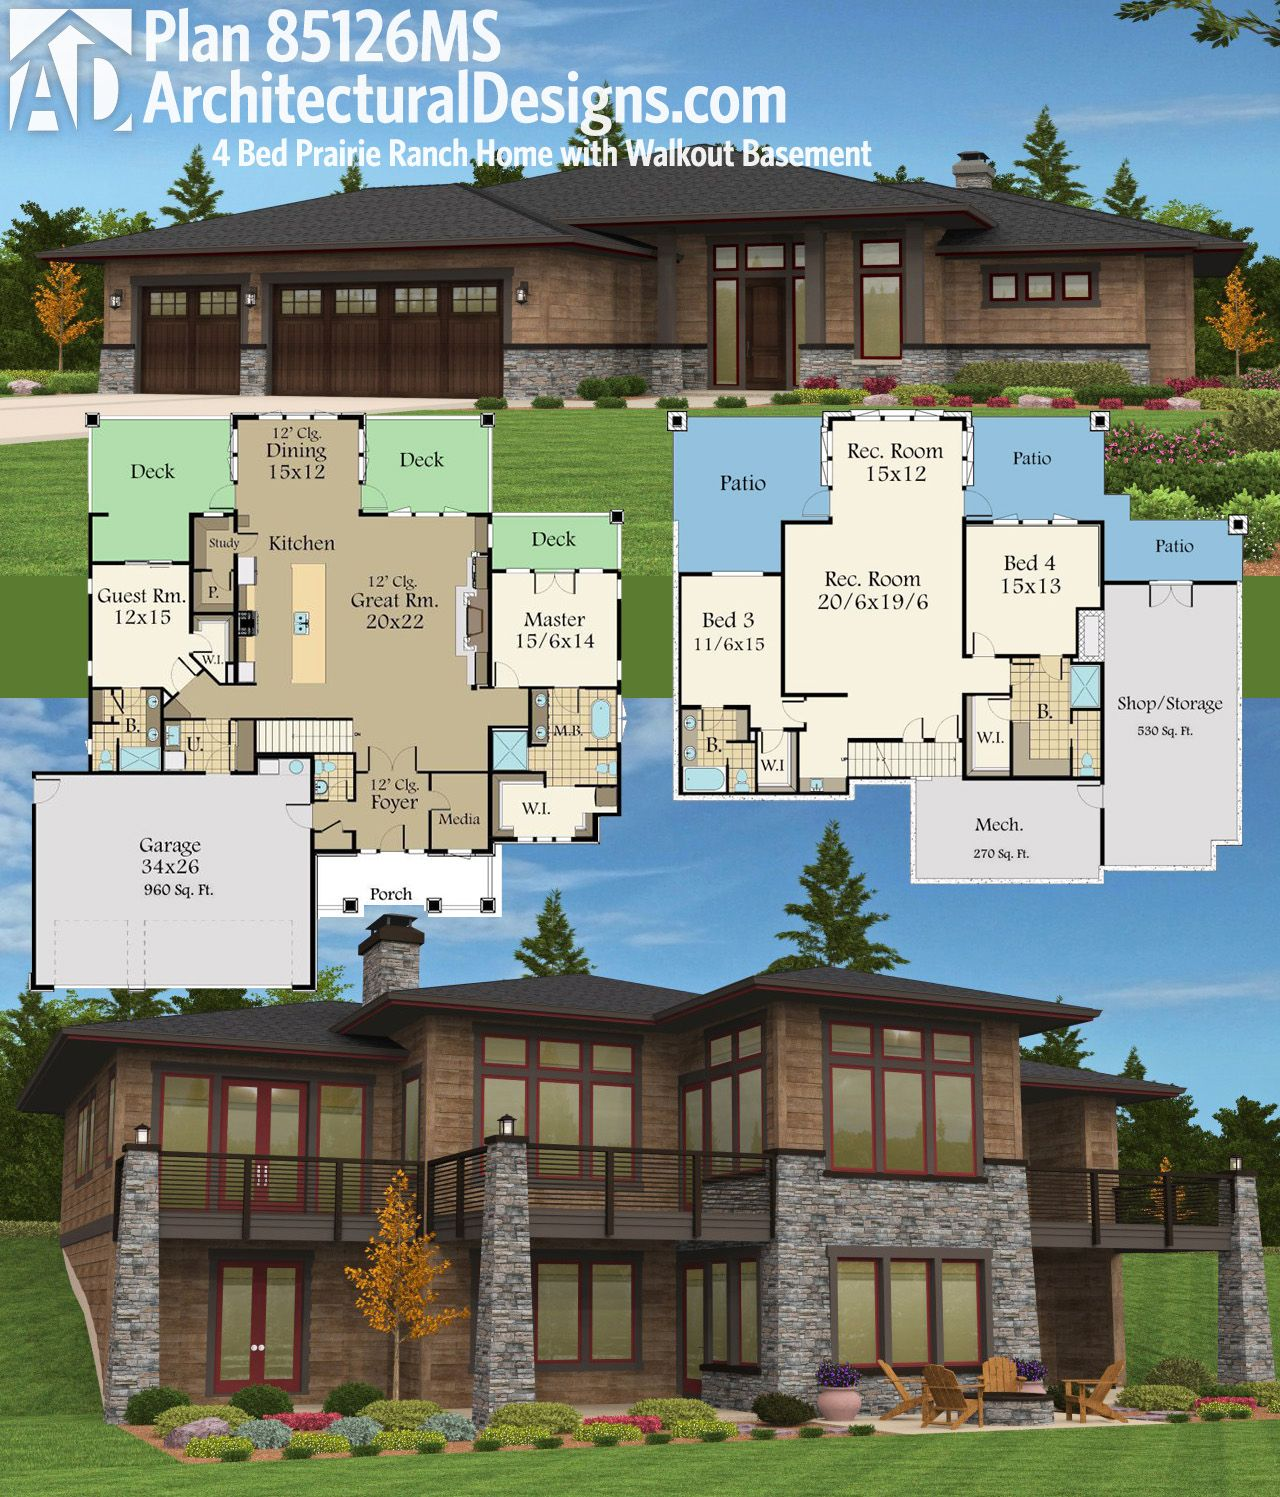 Plan 85126ms Prairie Ranch Home With Walkout Basement Rancher House Plans Basement House Plans Lake House Plans